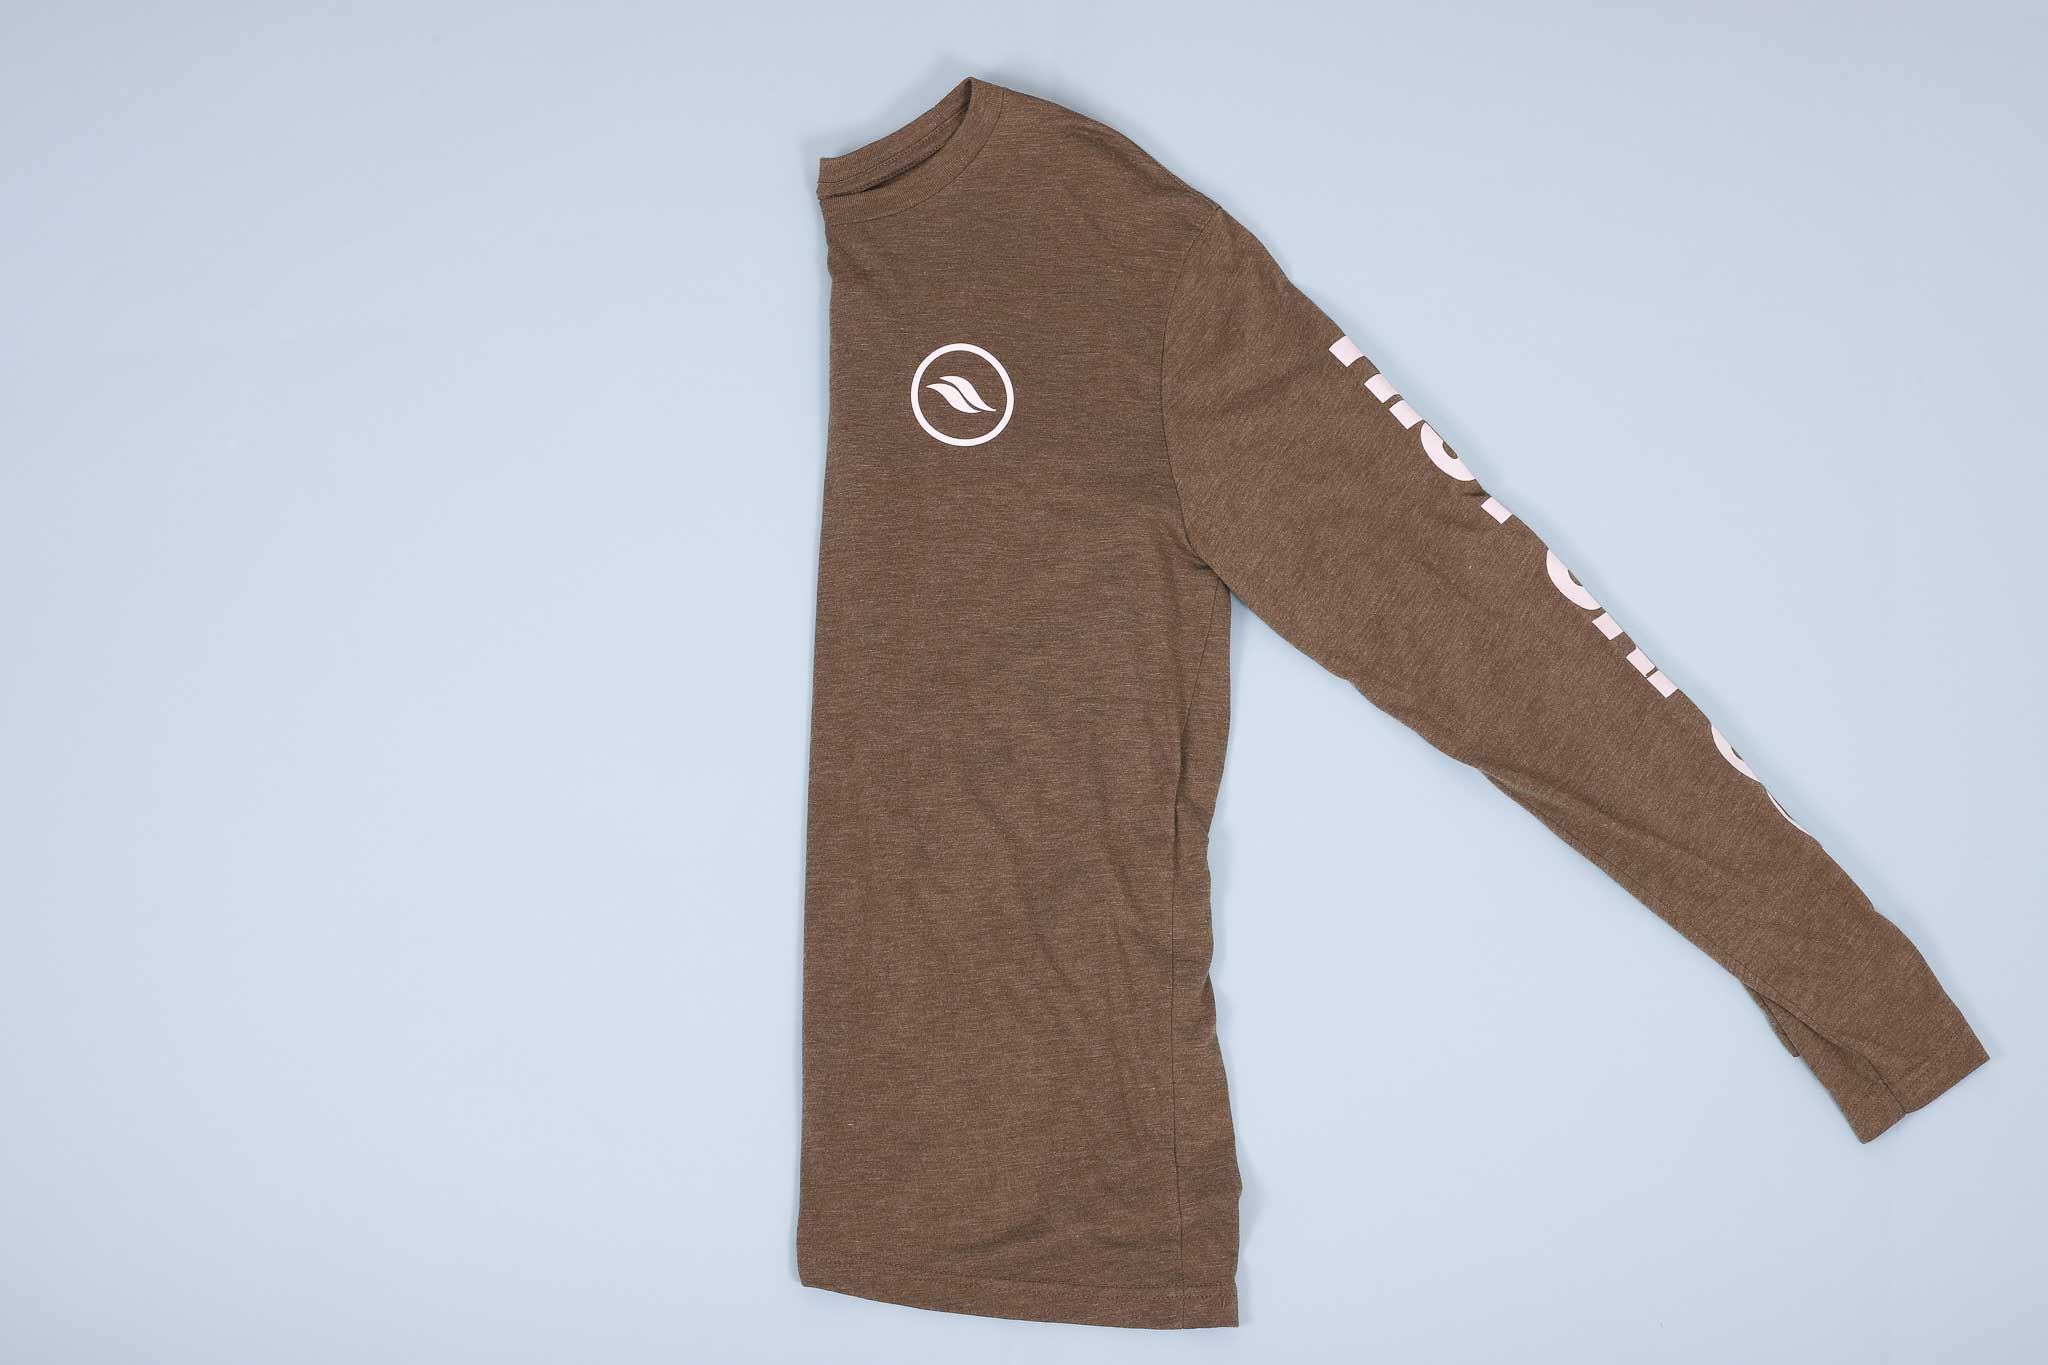 Olive long sleeve shirt with white text on the sleeves folded in half on a light blue background